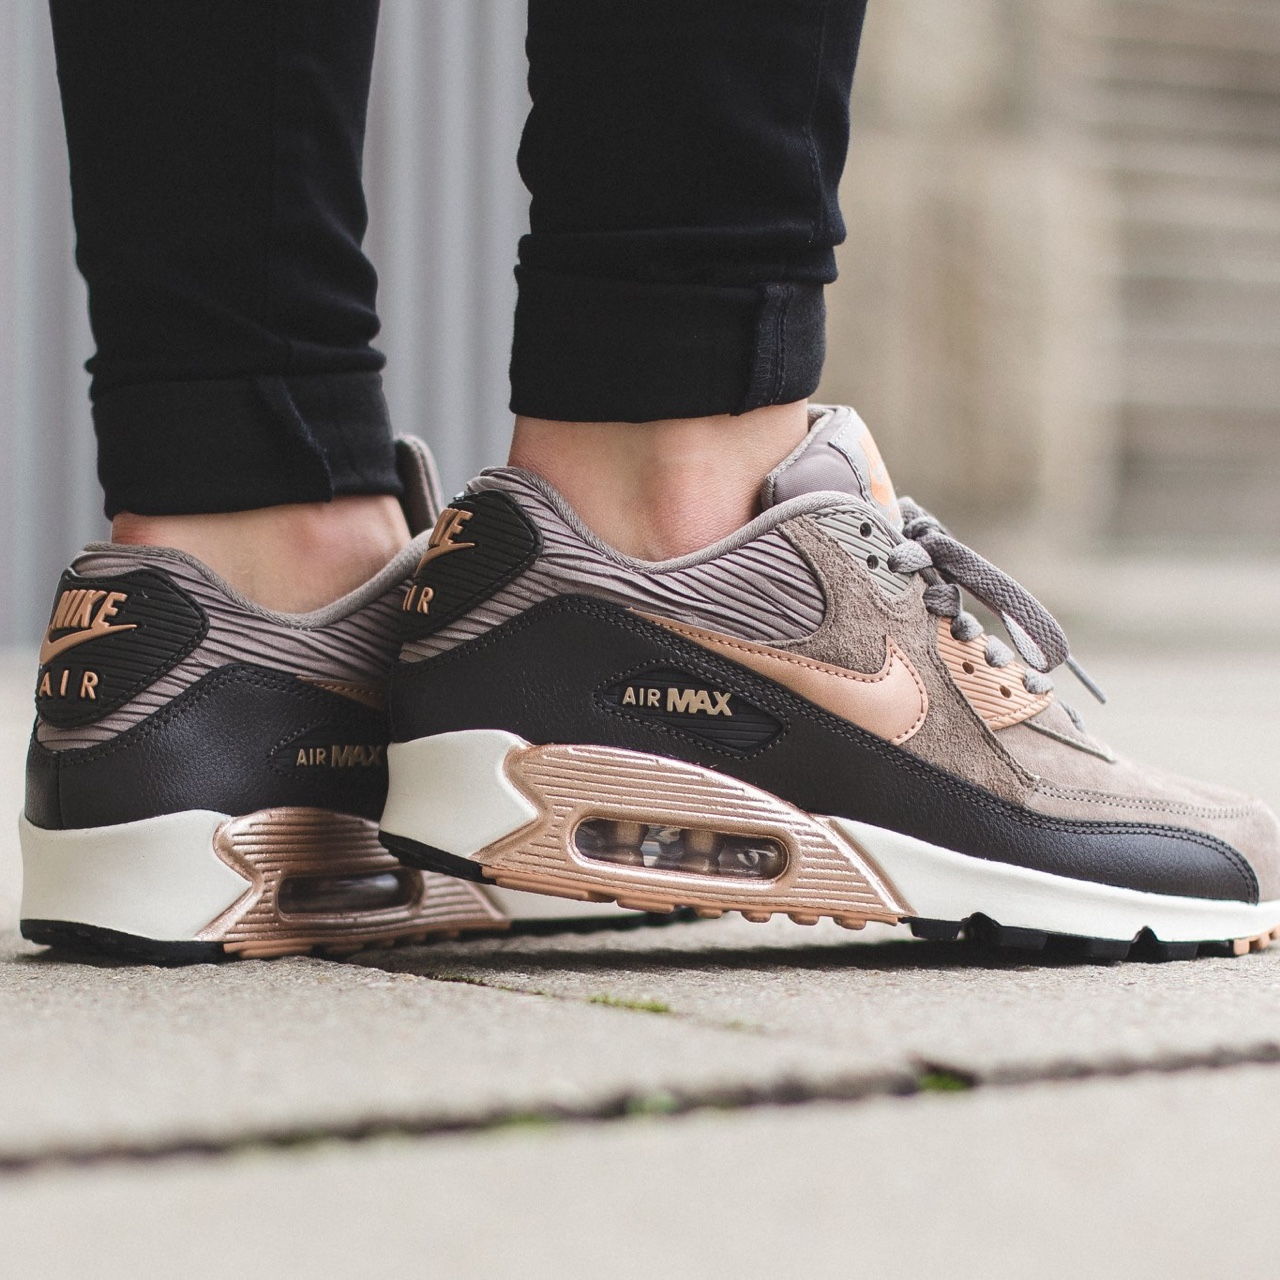 TrainersDepop Air And Grey Max Suede Nike Rose Gold 90 c351uFKTlJ